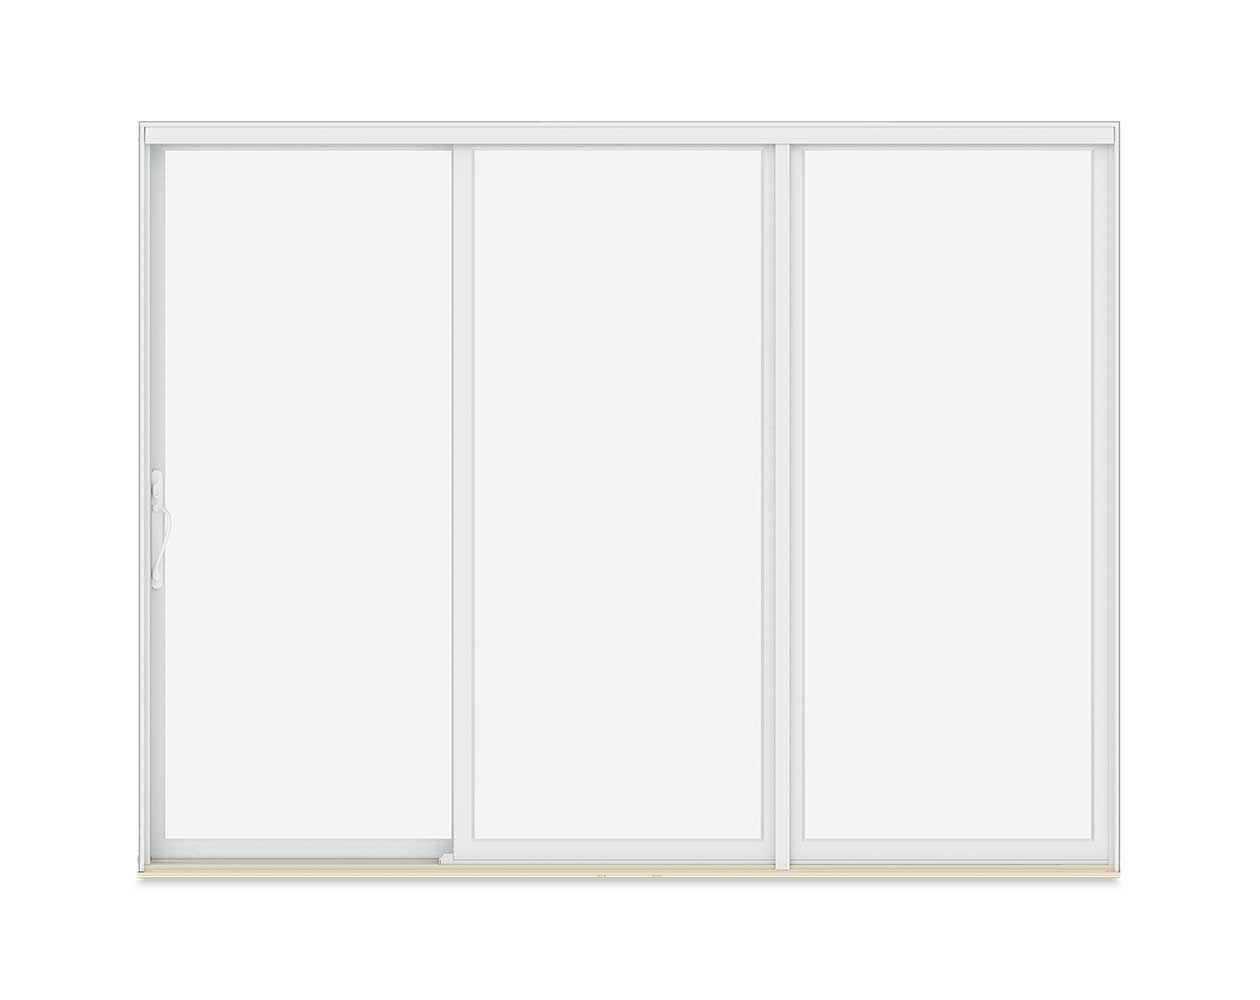 Three-Panel Sliding Patio door with operator side unit